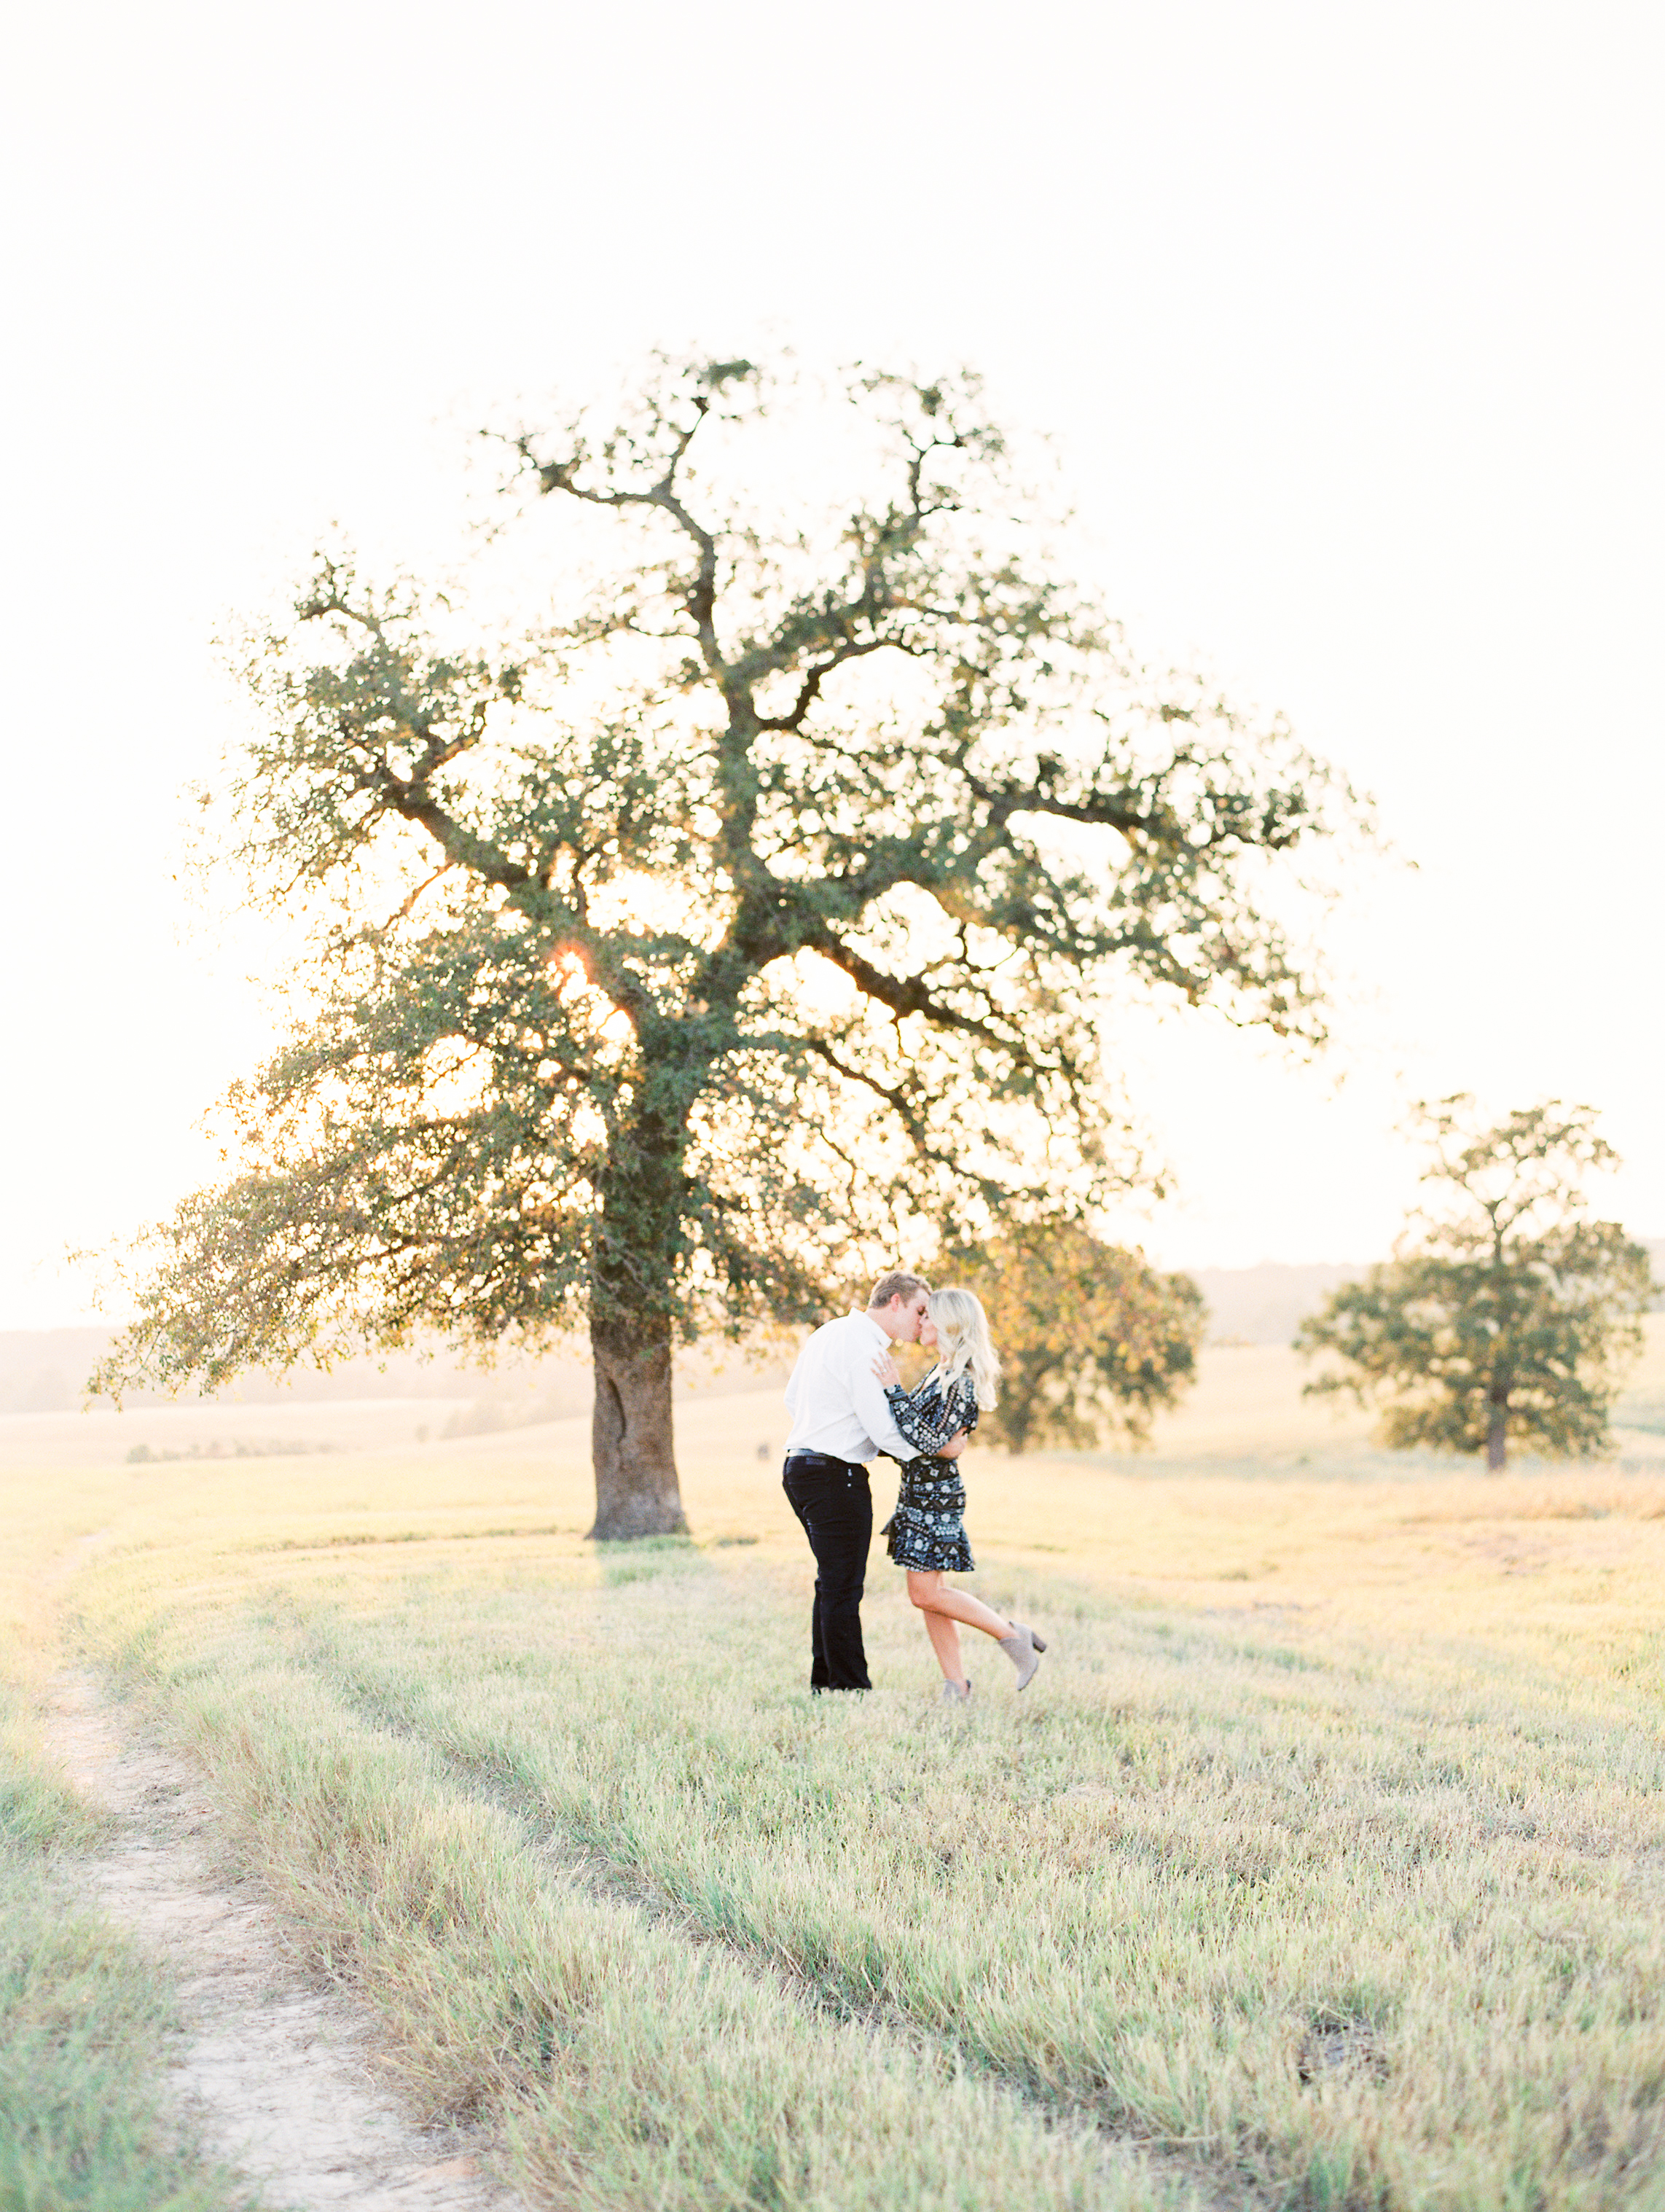 Lauren+John+Engaged+TX-56.jpg